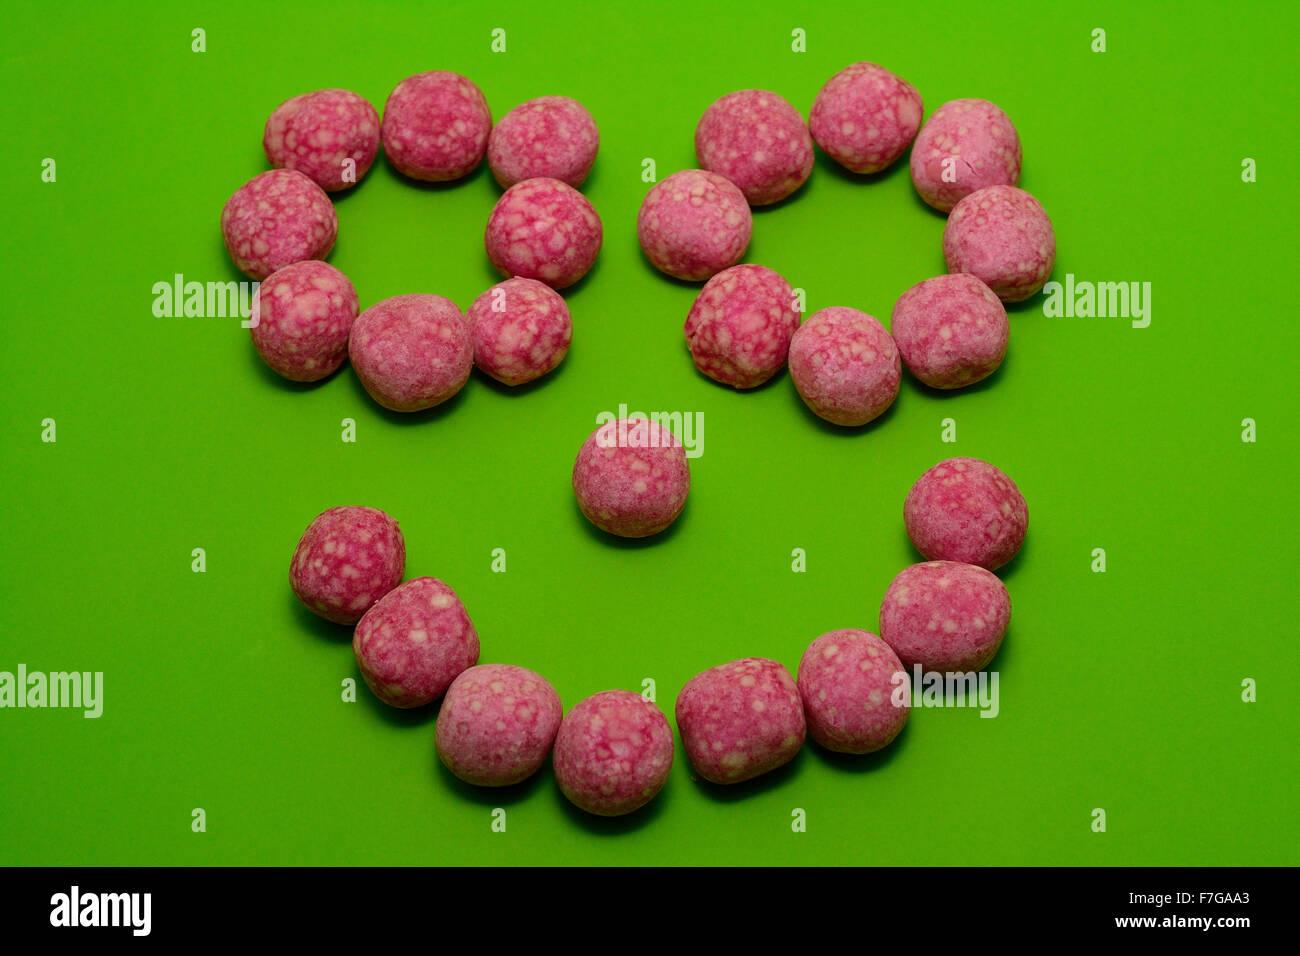 Smiling Face made with pink bonbon sweets - Stock Image